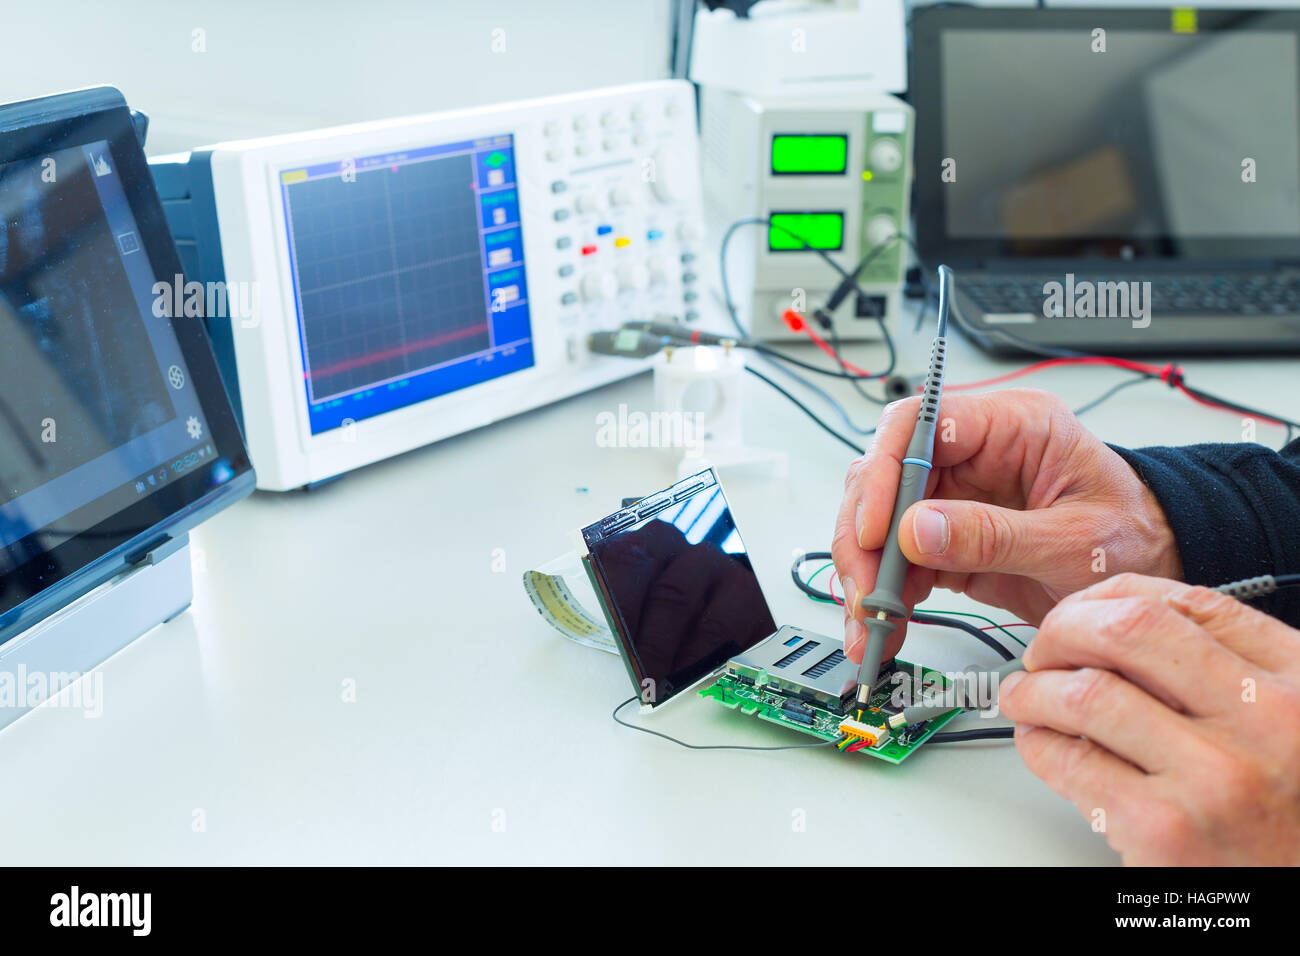 Calibration Lab Stock Photos Images Alamy Toggle On Off Switch Electronicslab Measuring Devices In The Electronics Image